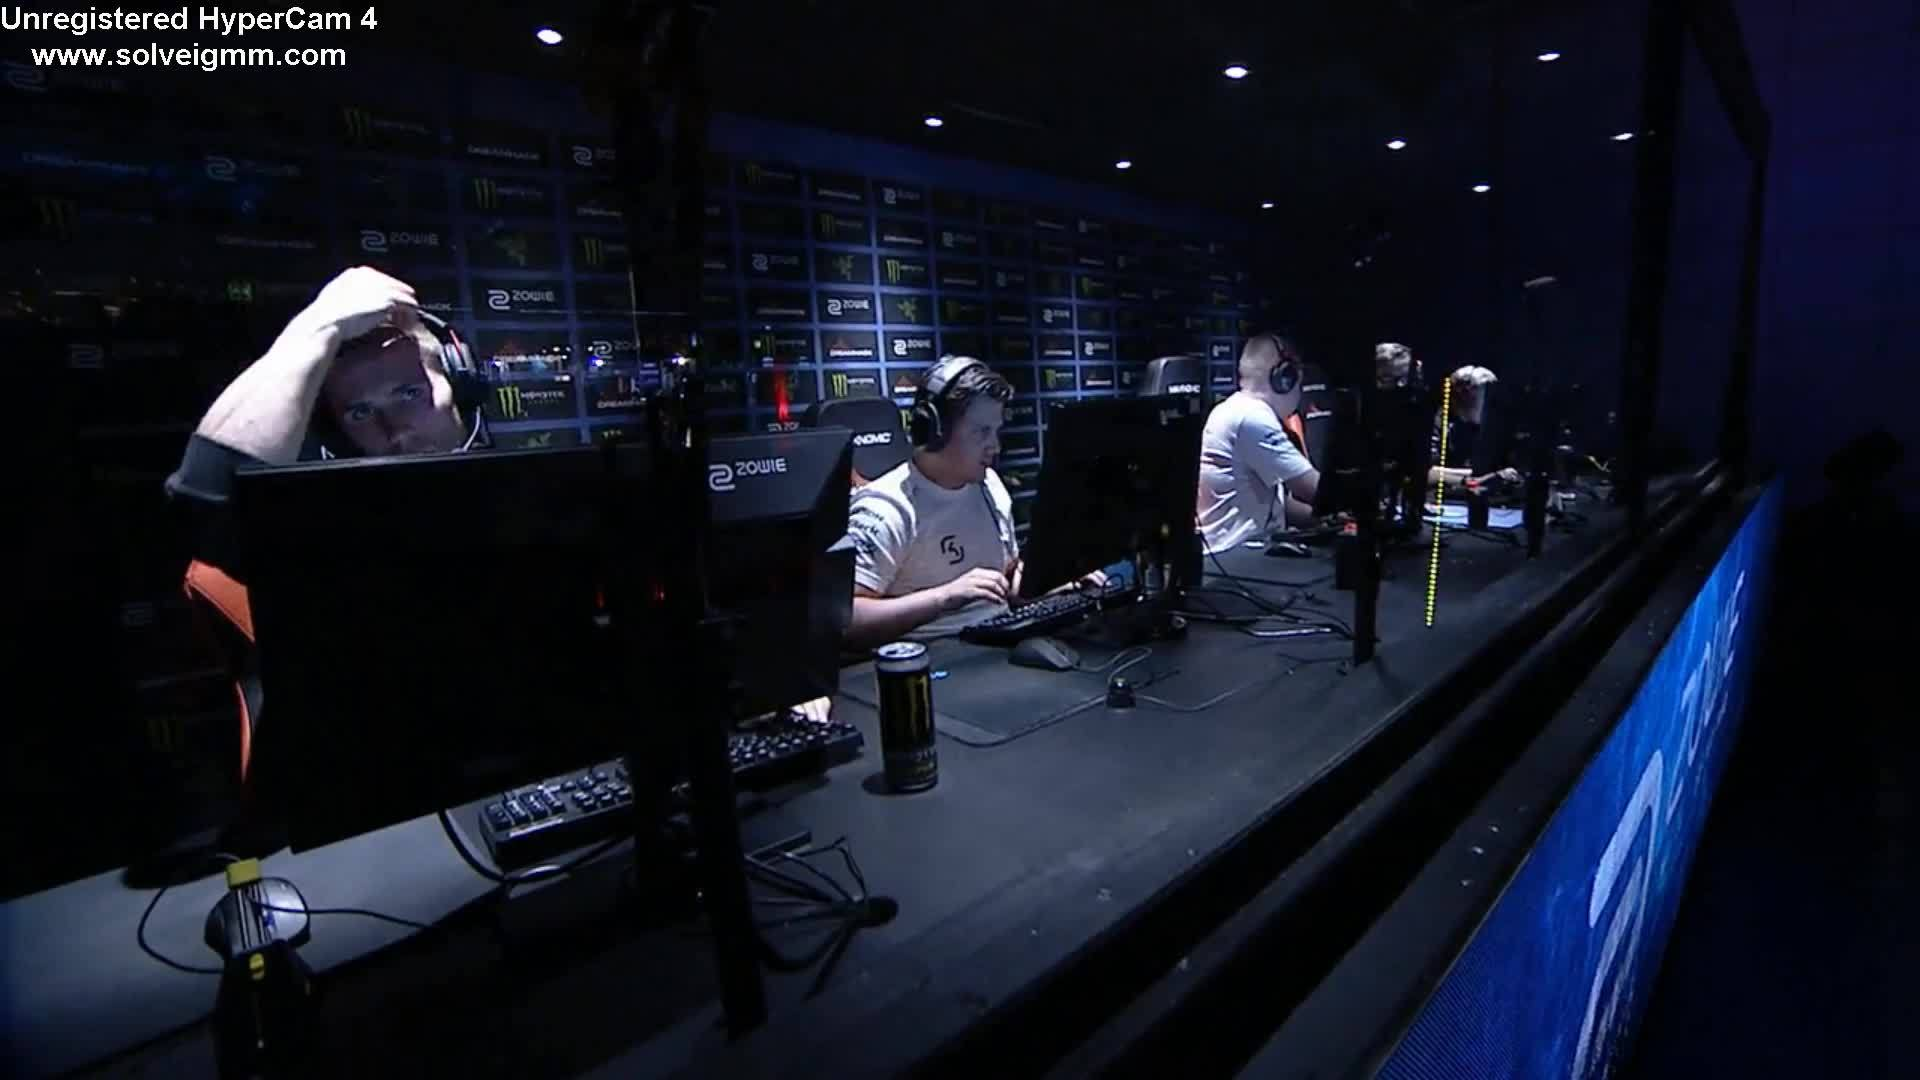 GlobalOffensive, LivestreamFail, When you need to adjust your balls (reddit) GIFs